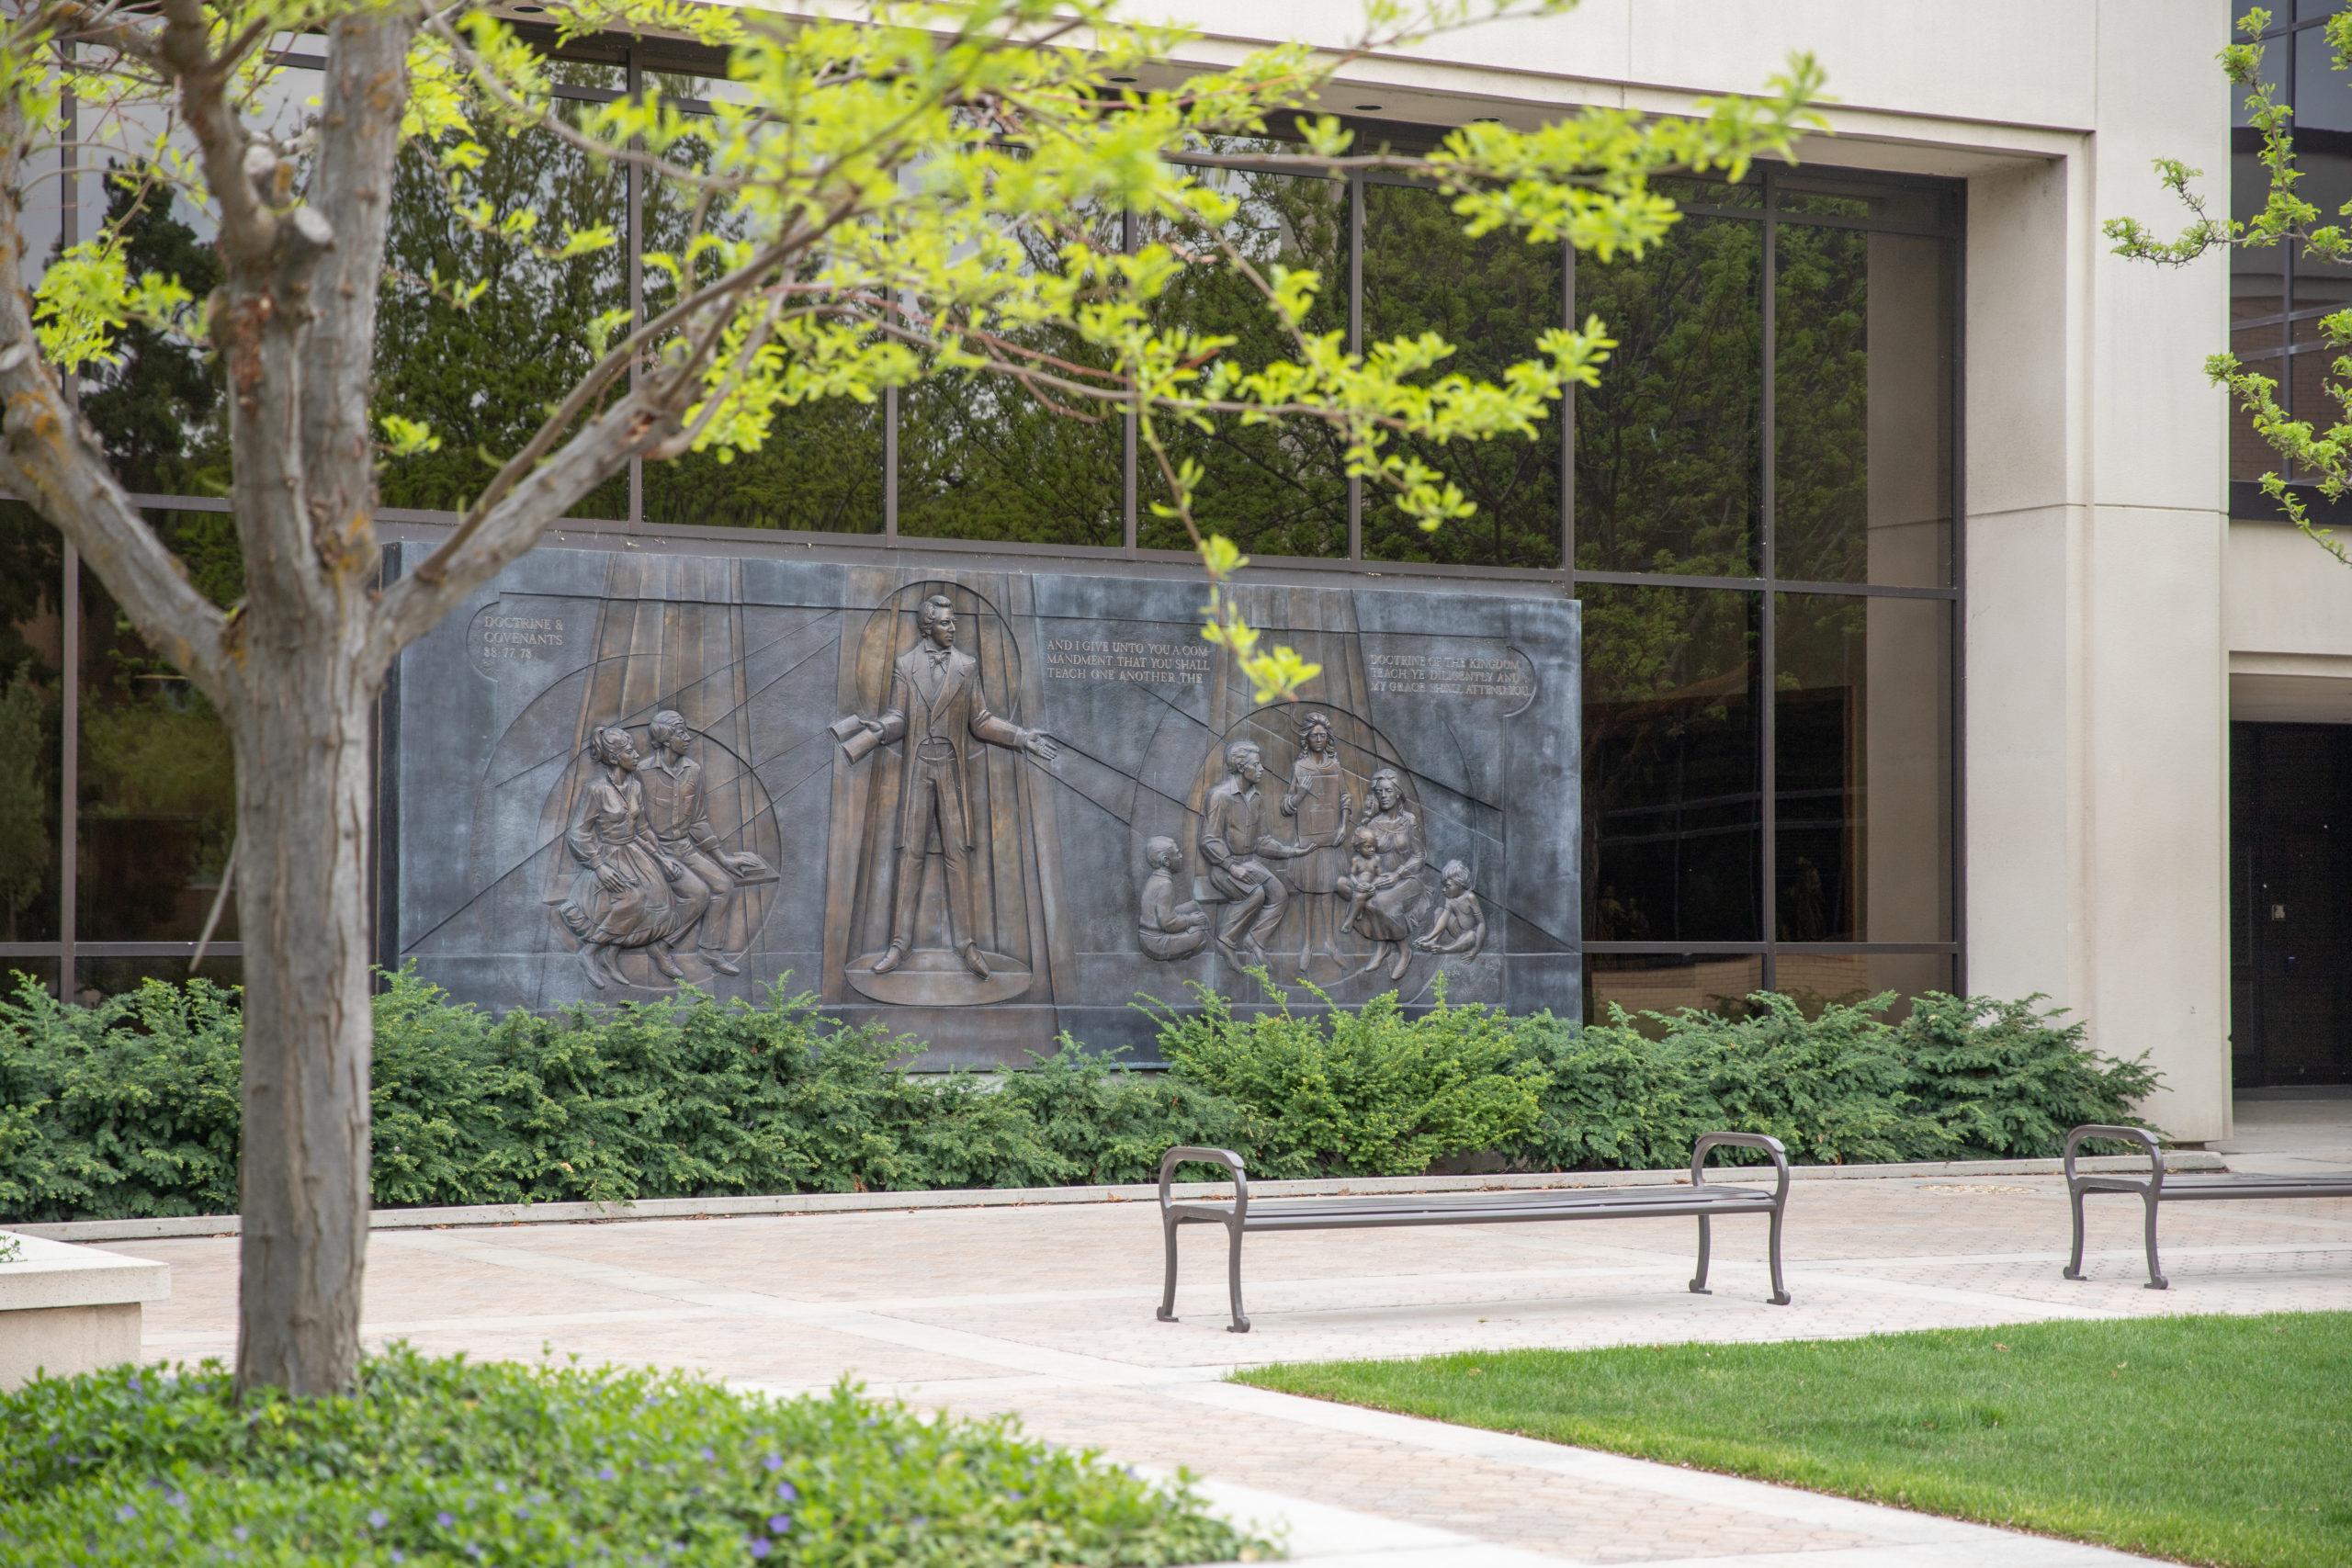 BYU students coauthor petition to increase focus on Christ in education - The Daily Universe